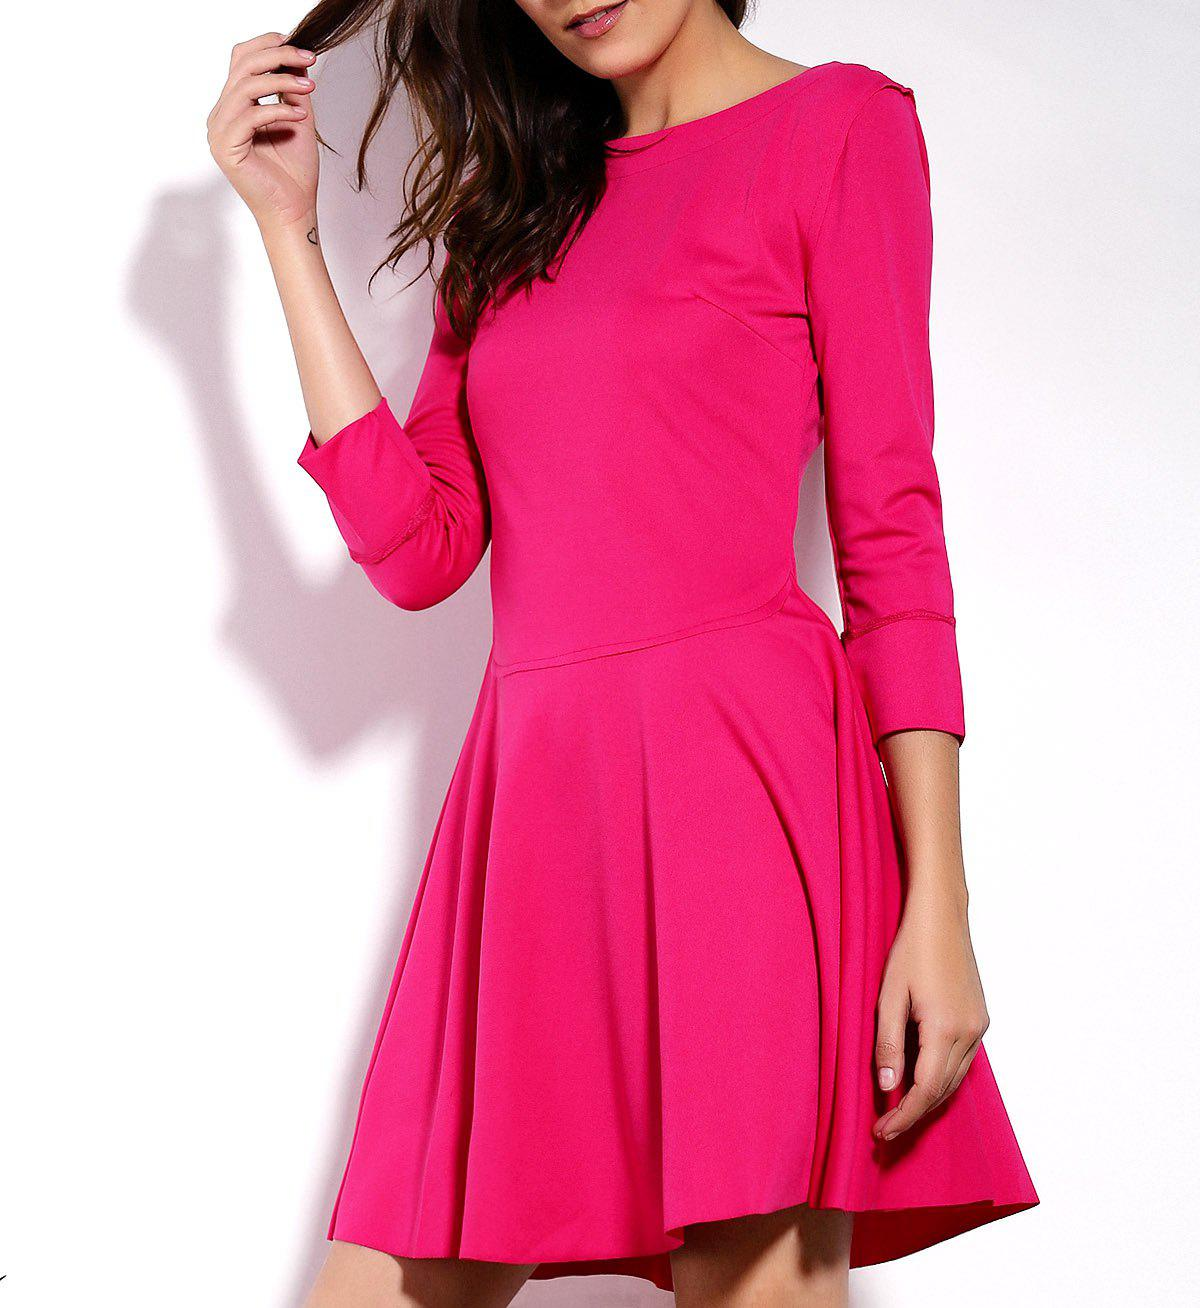 Fashionable 3/4 Sleeve Round Collar Slimming Solid Color Women's Dress